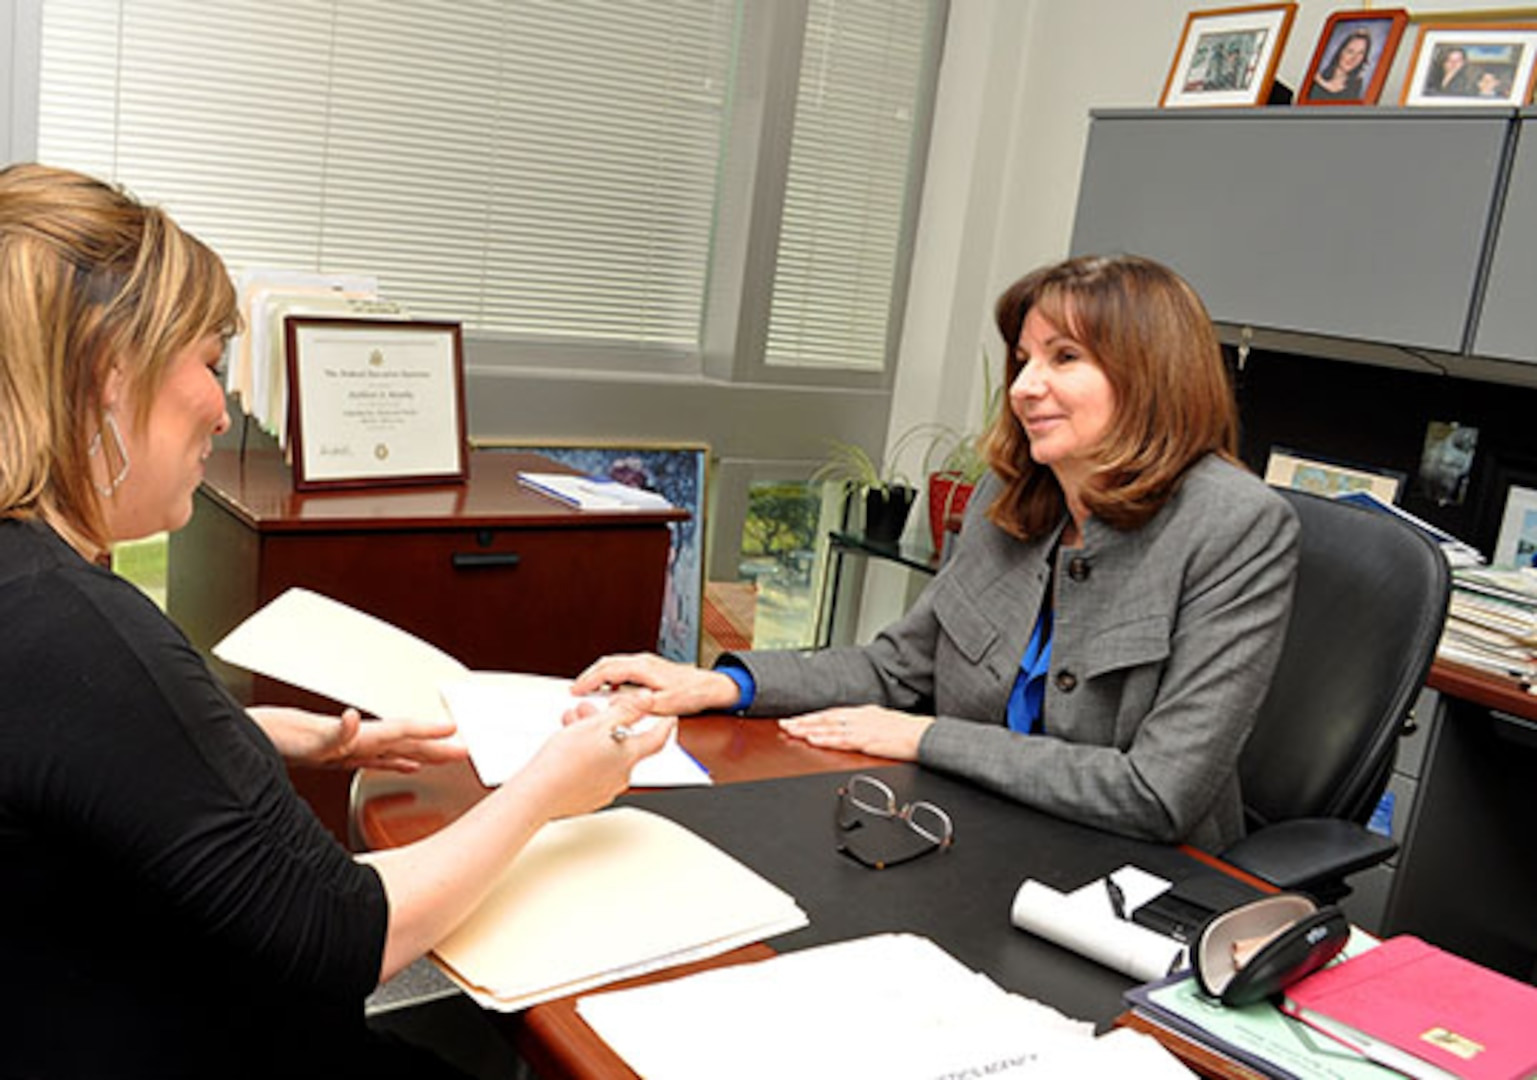 DLA Energy Chief Counsel Kathleen Murphy, right, guides mentee, Heather Thomas, a contract specialist with Utility Services Contracting Branch II.